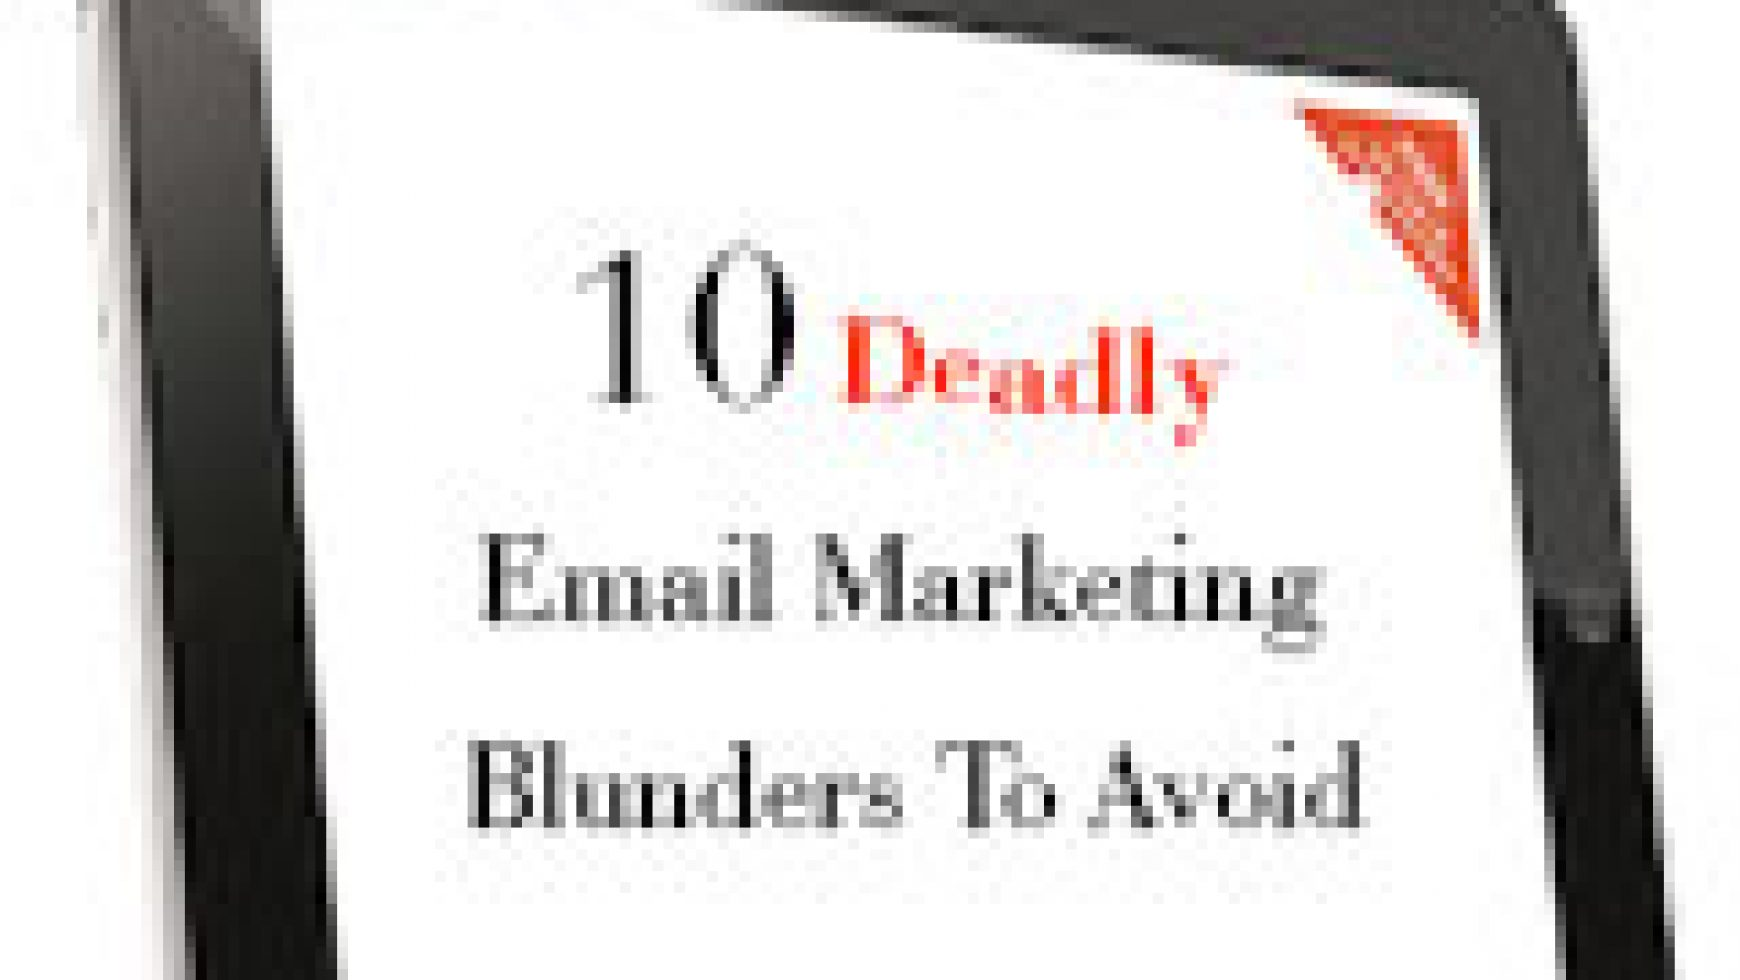 10 DEADLY EMAIL MARKETING BLUNDERS TO AVOID